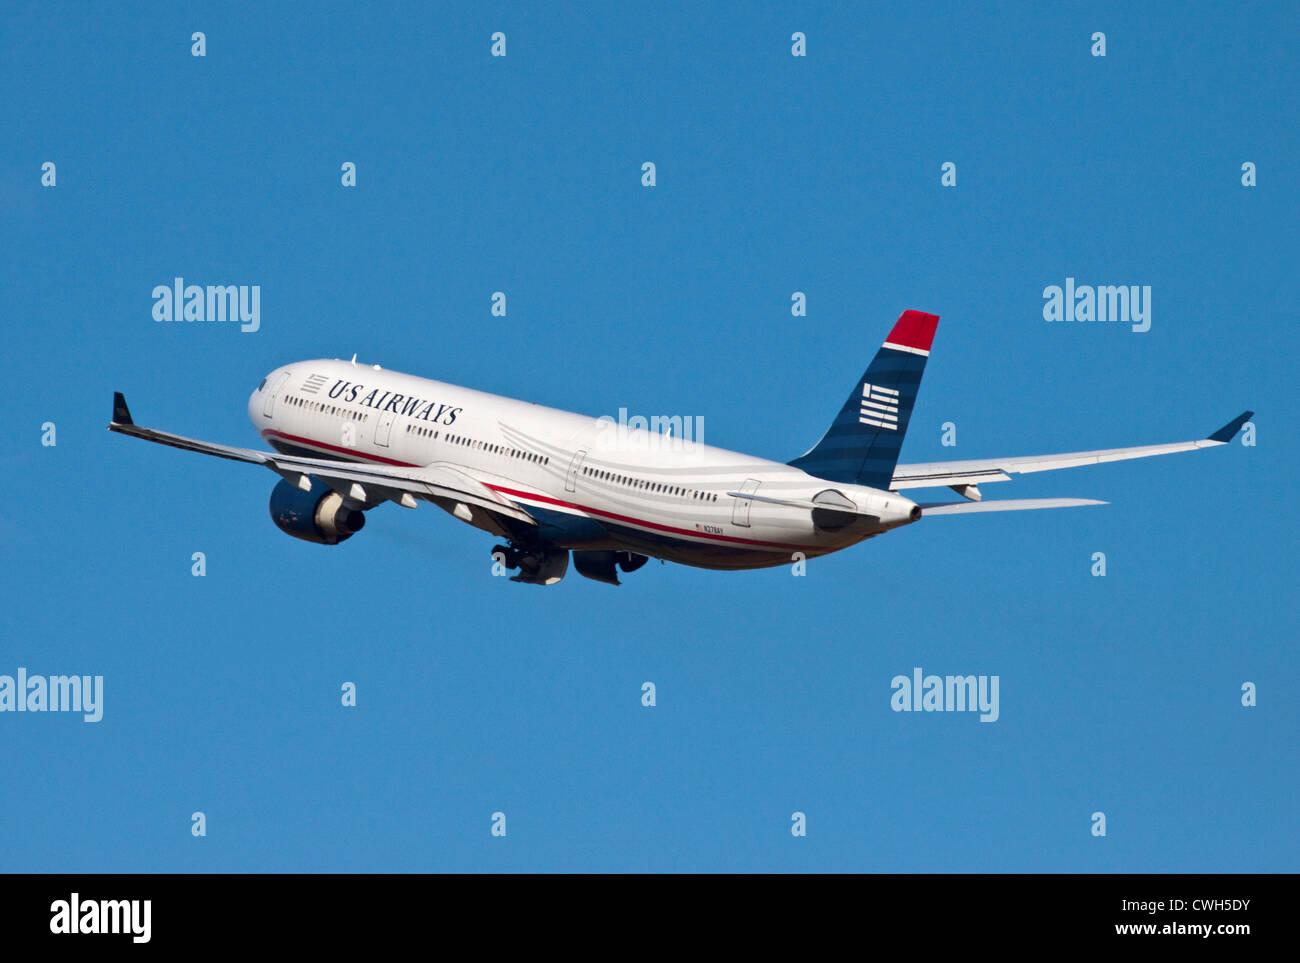 US Airways Airbus A330, Gatwick Airport, Sussex, England - Stock Image